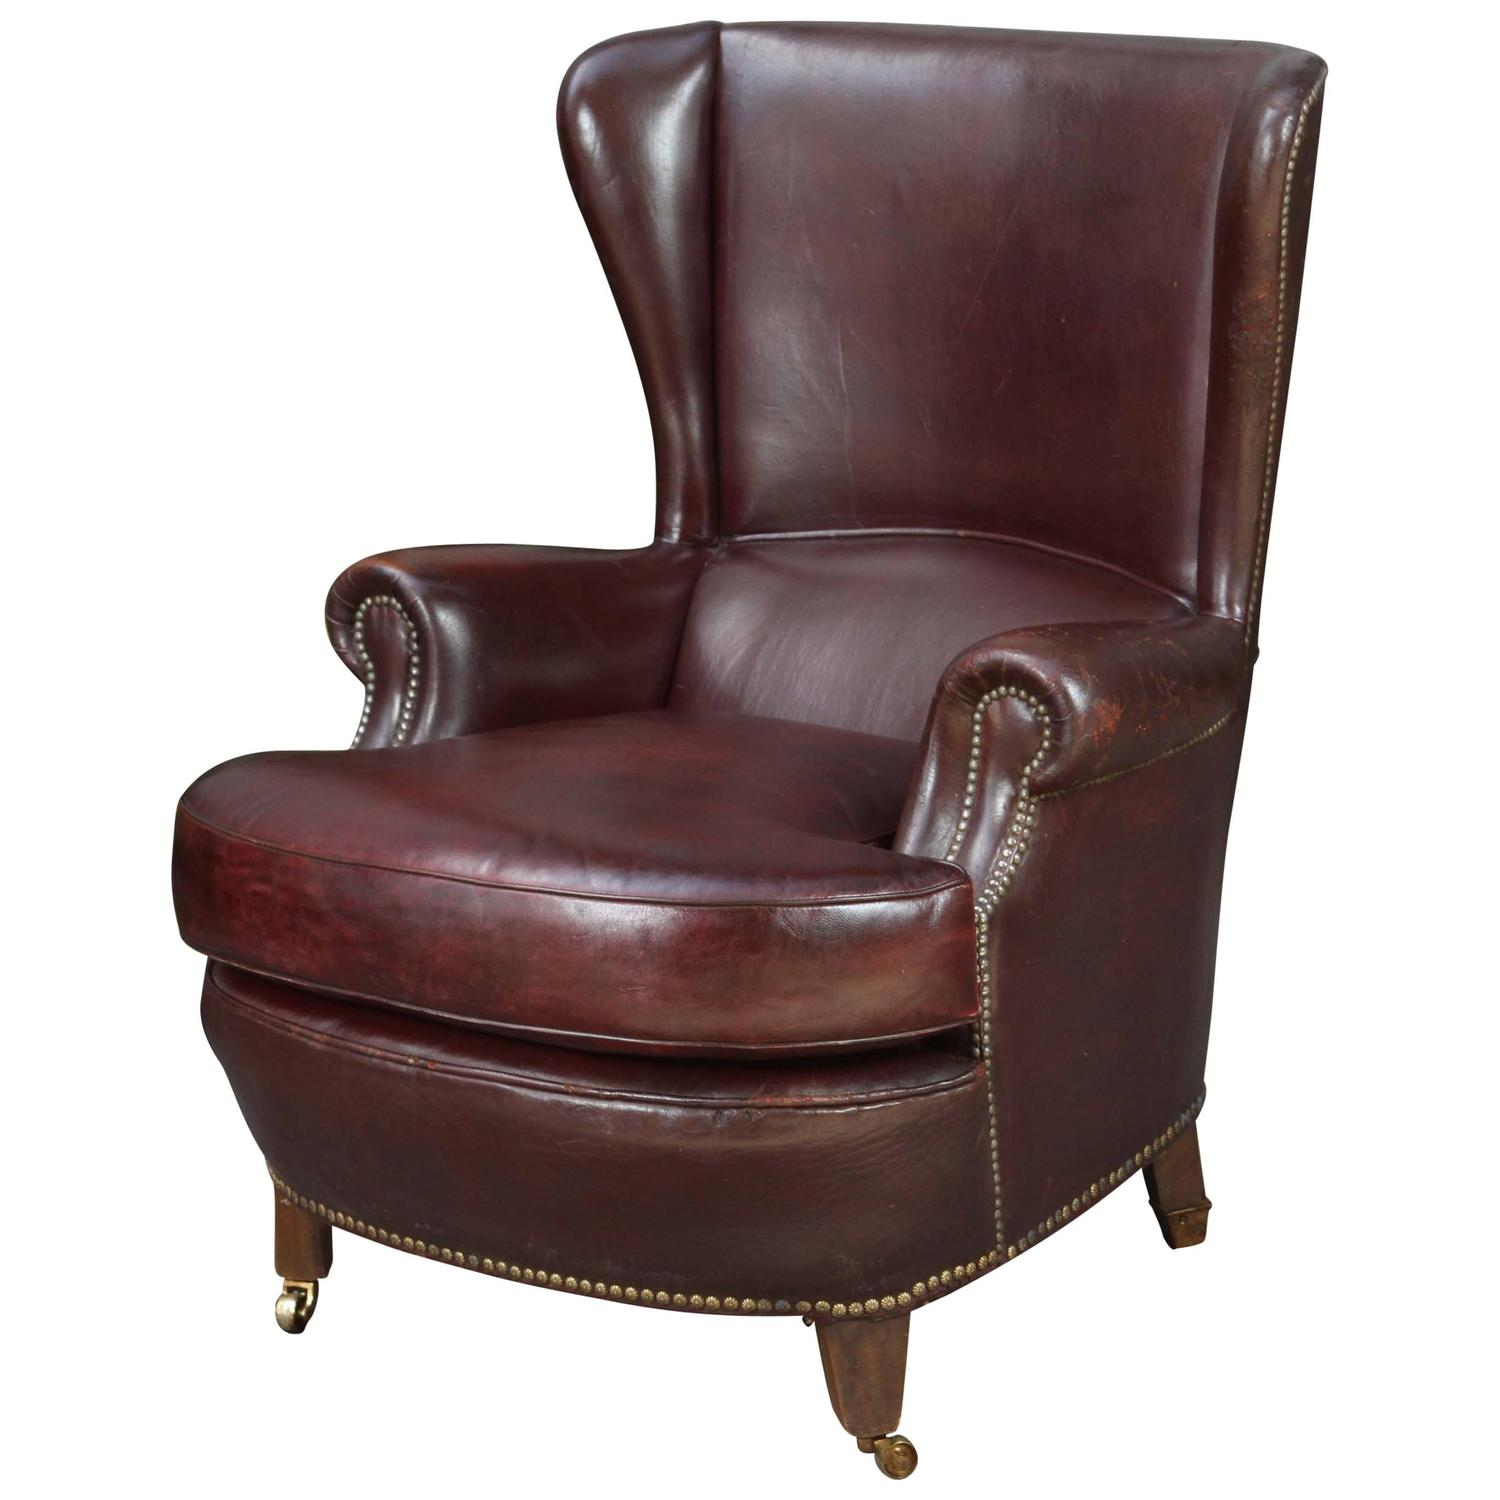 Leather wingback chair for sale at 1stdibs for Leather wingback recliner sale